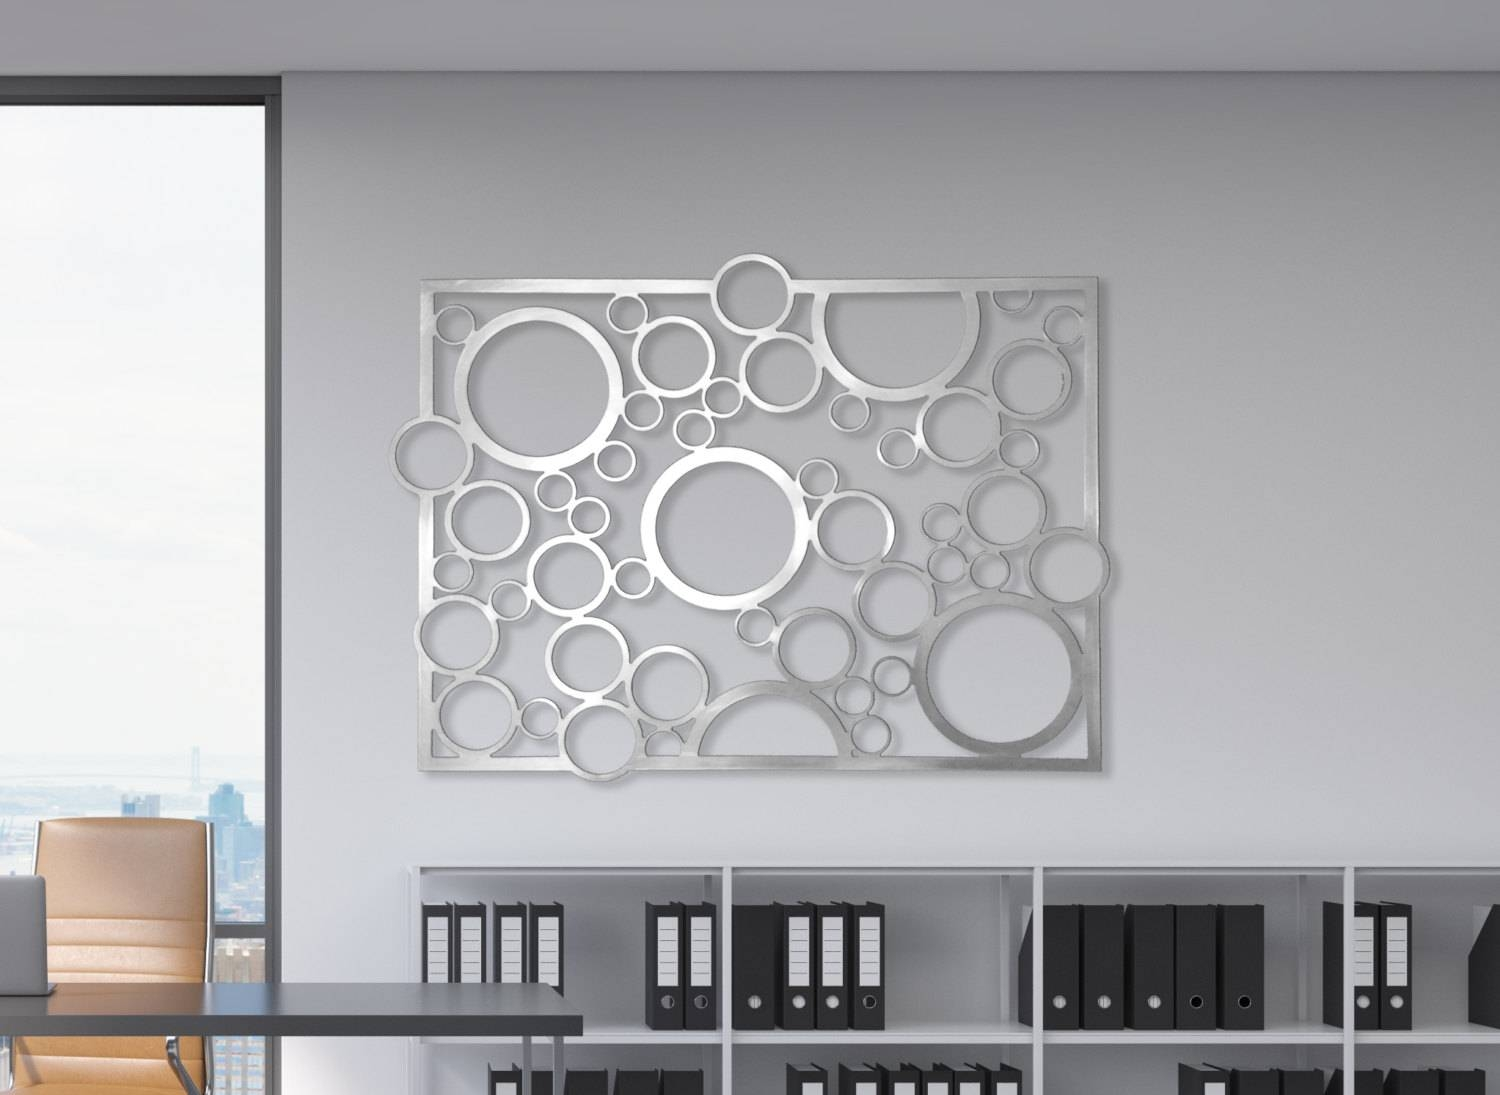 Laser Cut Metal Decorative Wall Art Panel Sculpture For Home With Regard To Most Recent Metal Wall Art Panels (View 14 of 20)